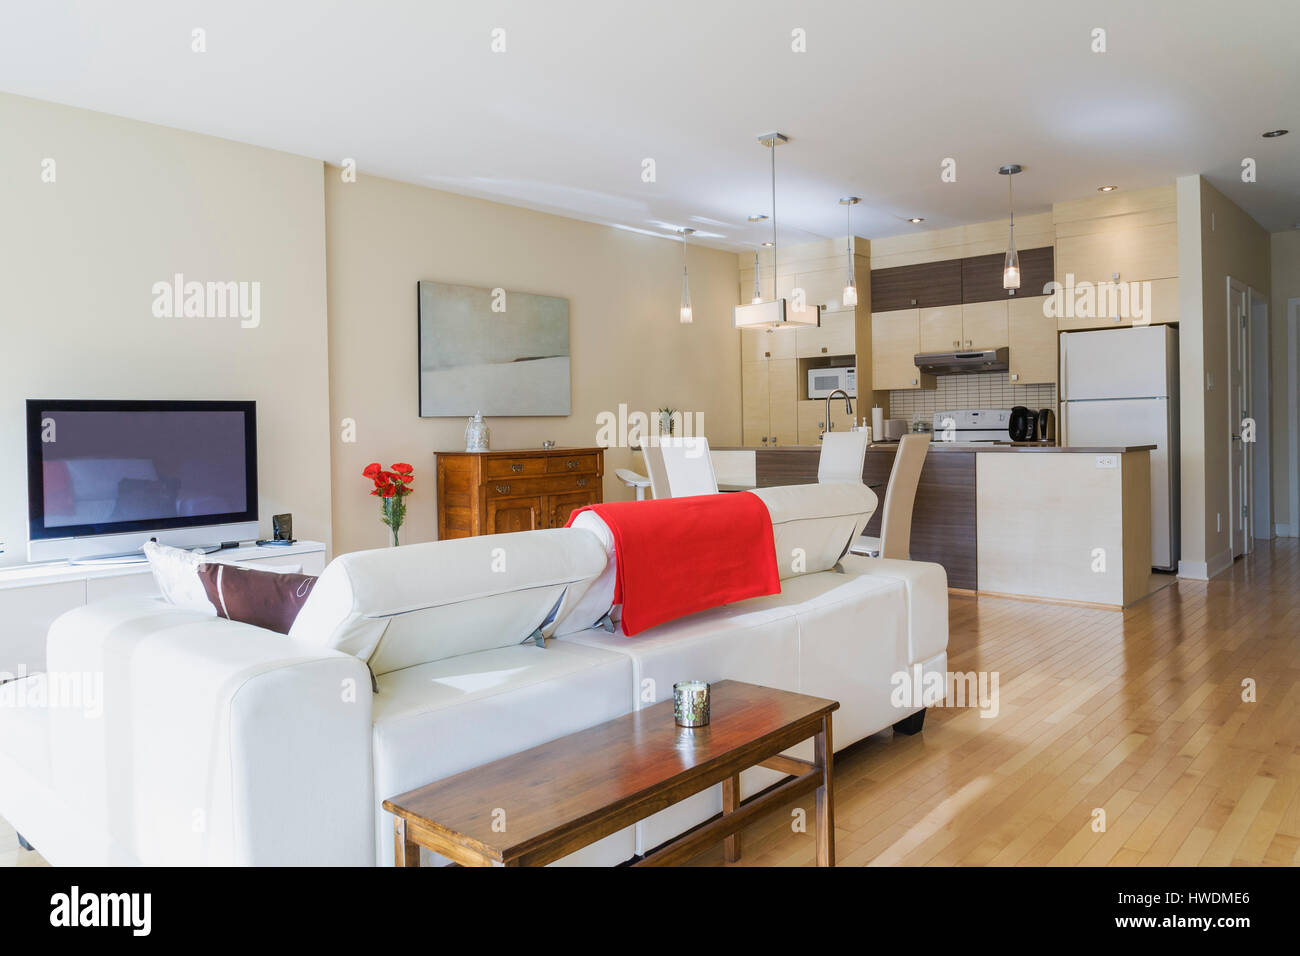 White leather sofa in living room and kitchen diner in renovated ...